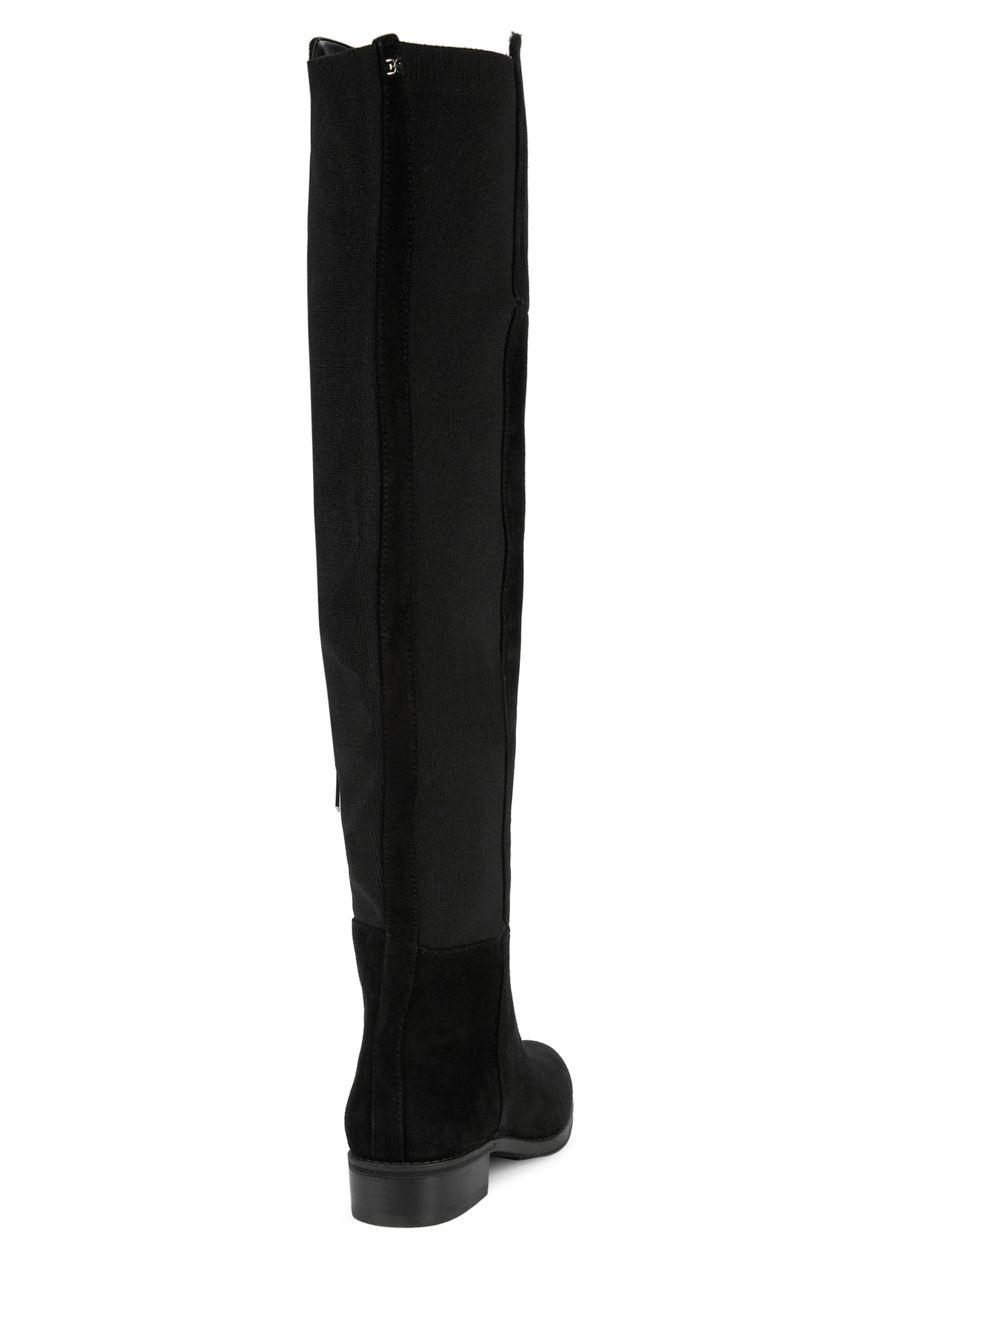 bbff67225 Lyst - Sam Edelman Pam Over-the-knee Boots in Black - Save 14%